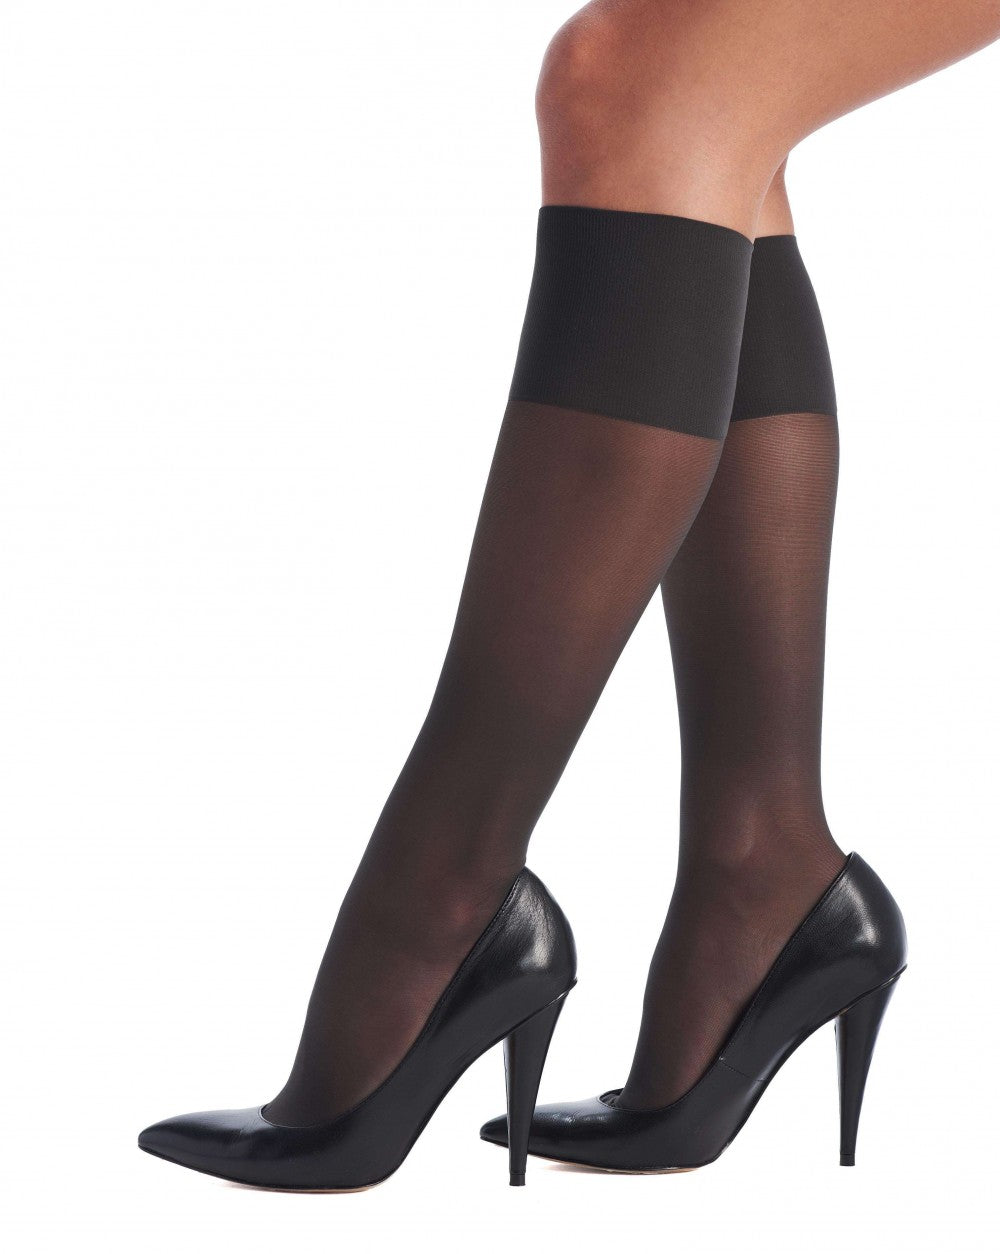 OROBLU Knee Highs Repos 70 Relax, Medium Compression, BLACK